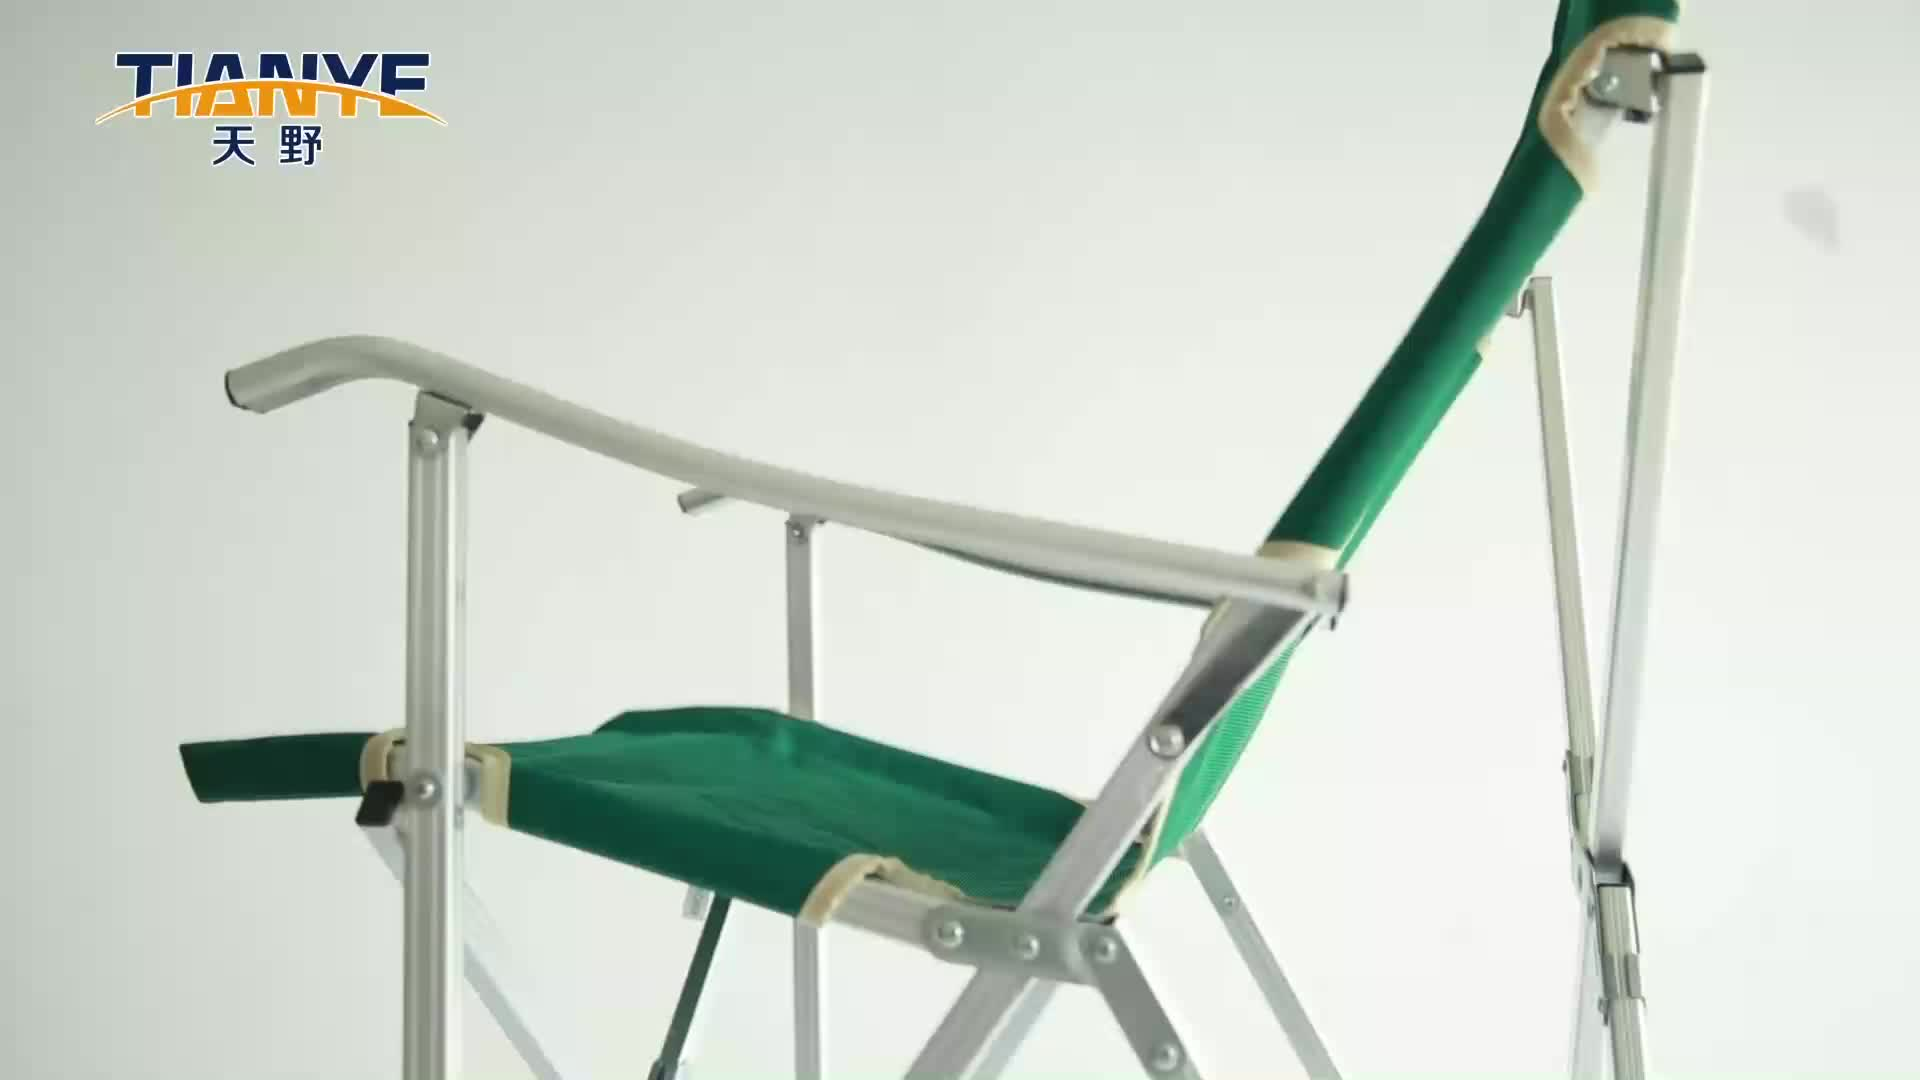 Tianye beach chair detachable camping chair aluminium breathable extended folding fishing chair with cup holder in green